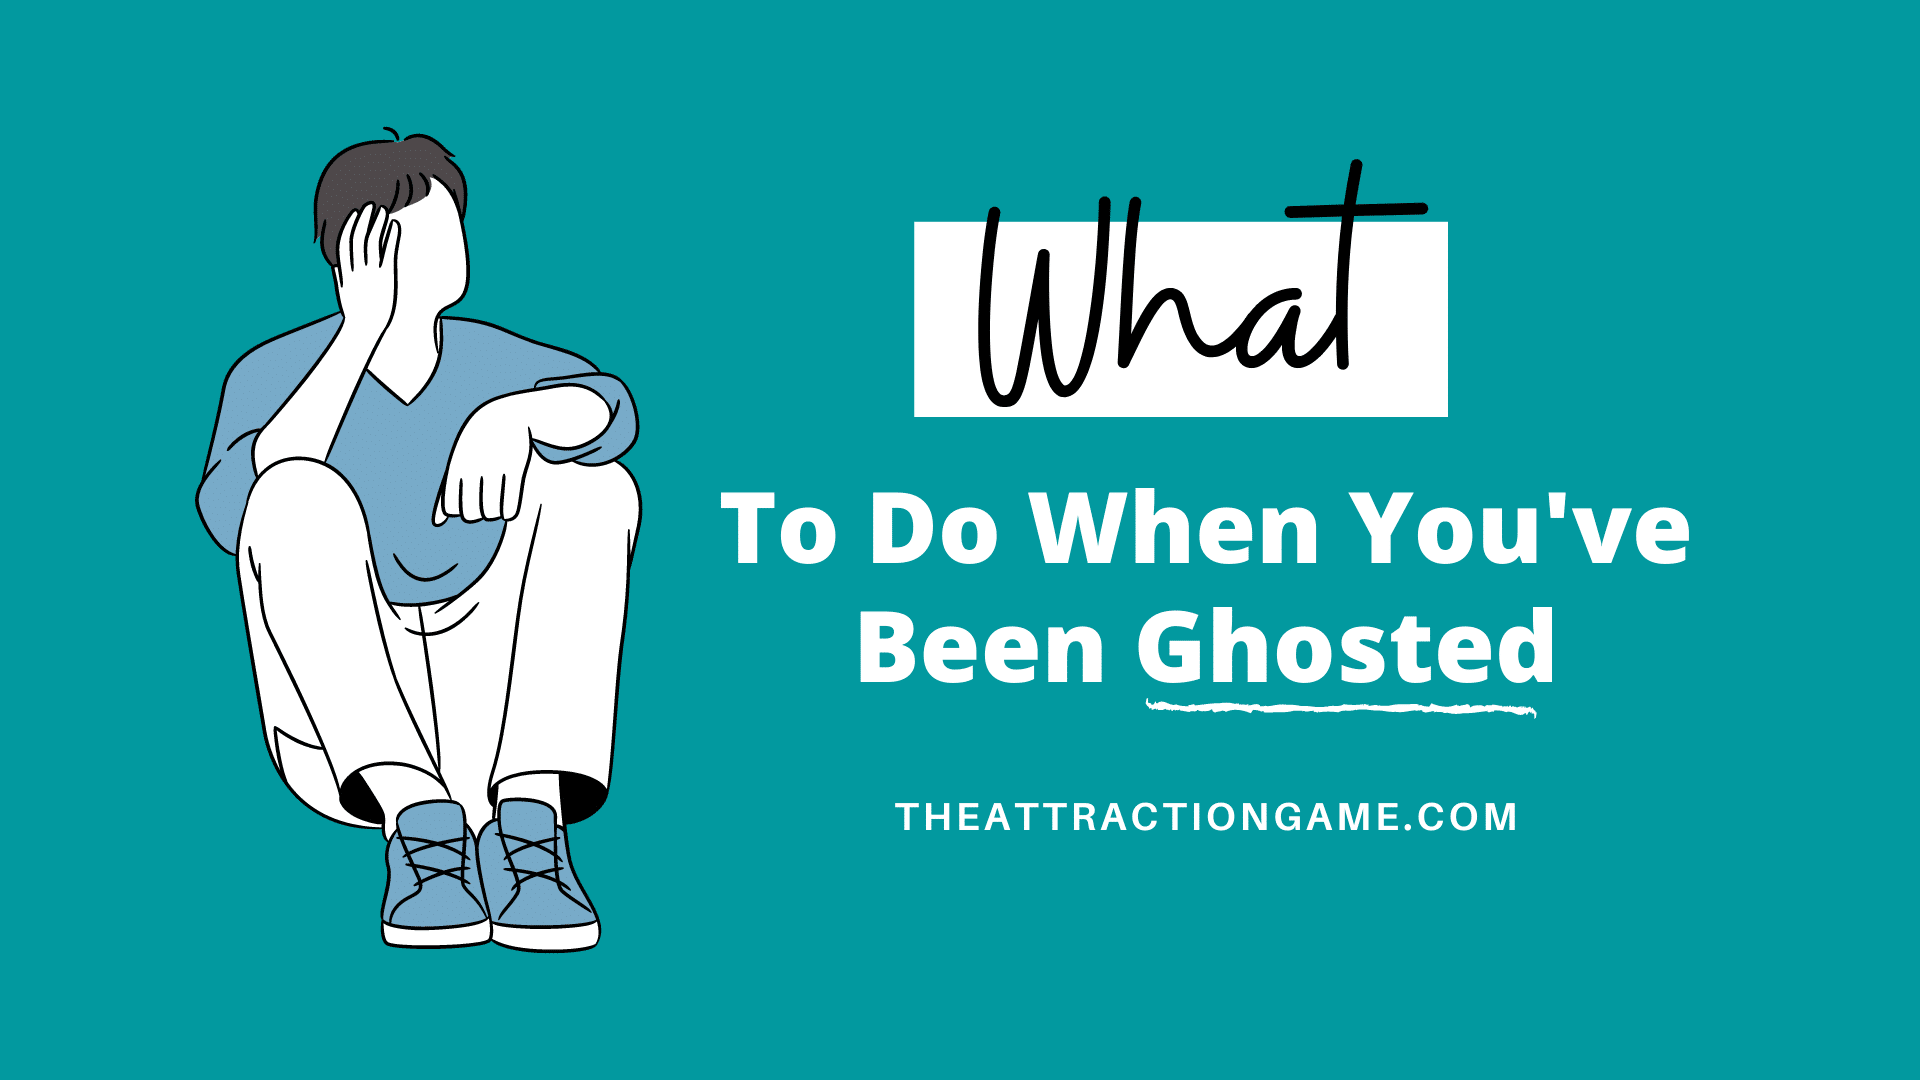 ghosted, being ghosted, how to deal with being ghosted, what to do when you're ghosted, how to deal with being ghosted